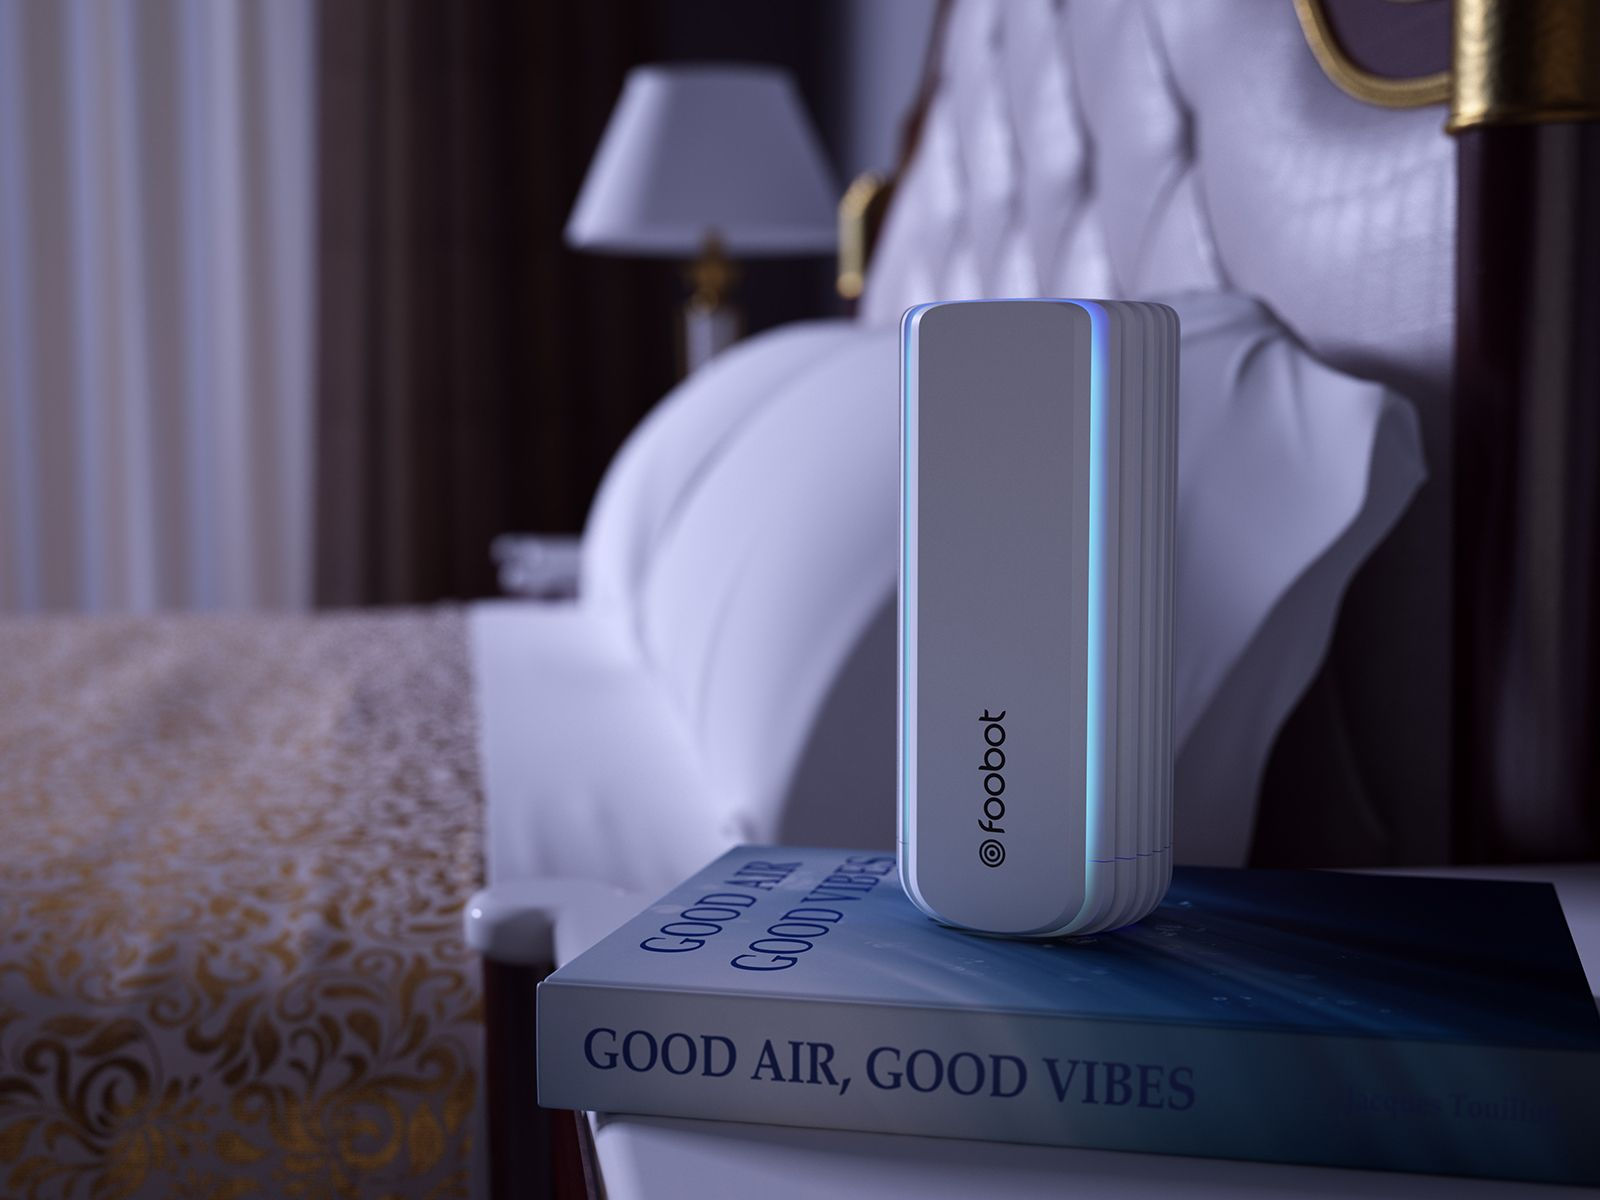 Foobot Indoor Smart Air Quality Monitor (Model 21) - Works